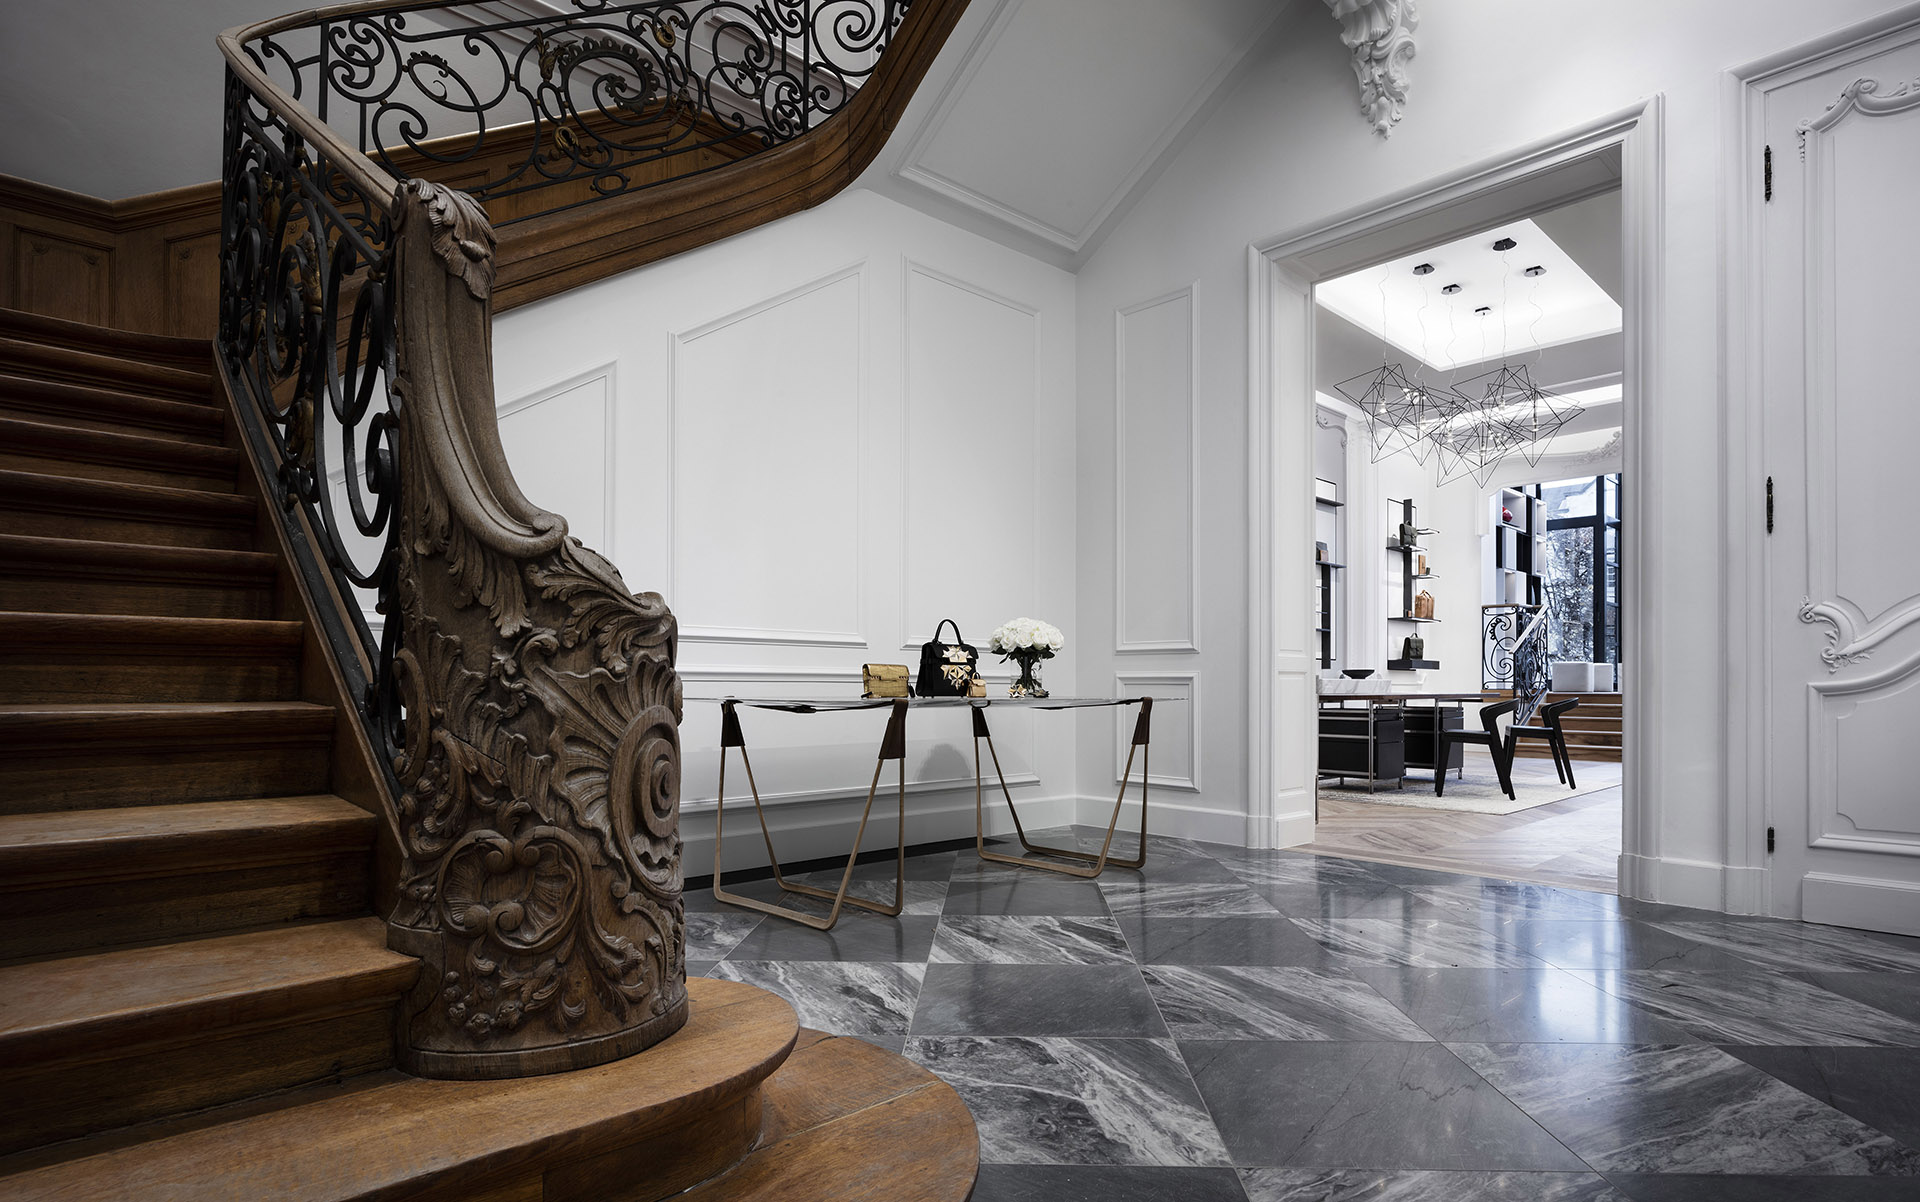 19th century residence transformed into a shop